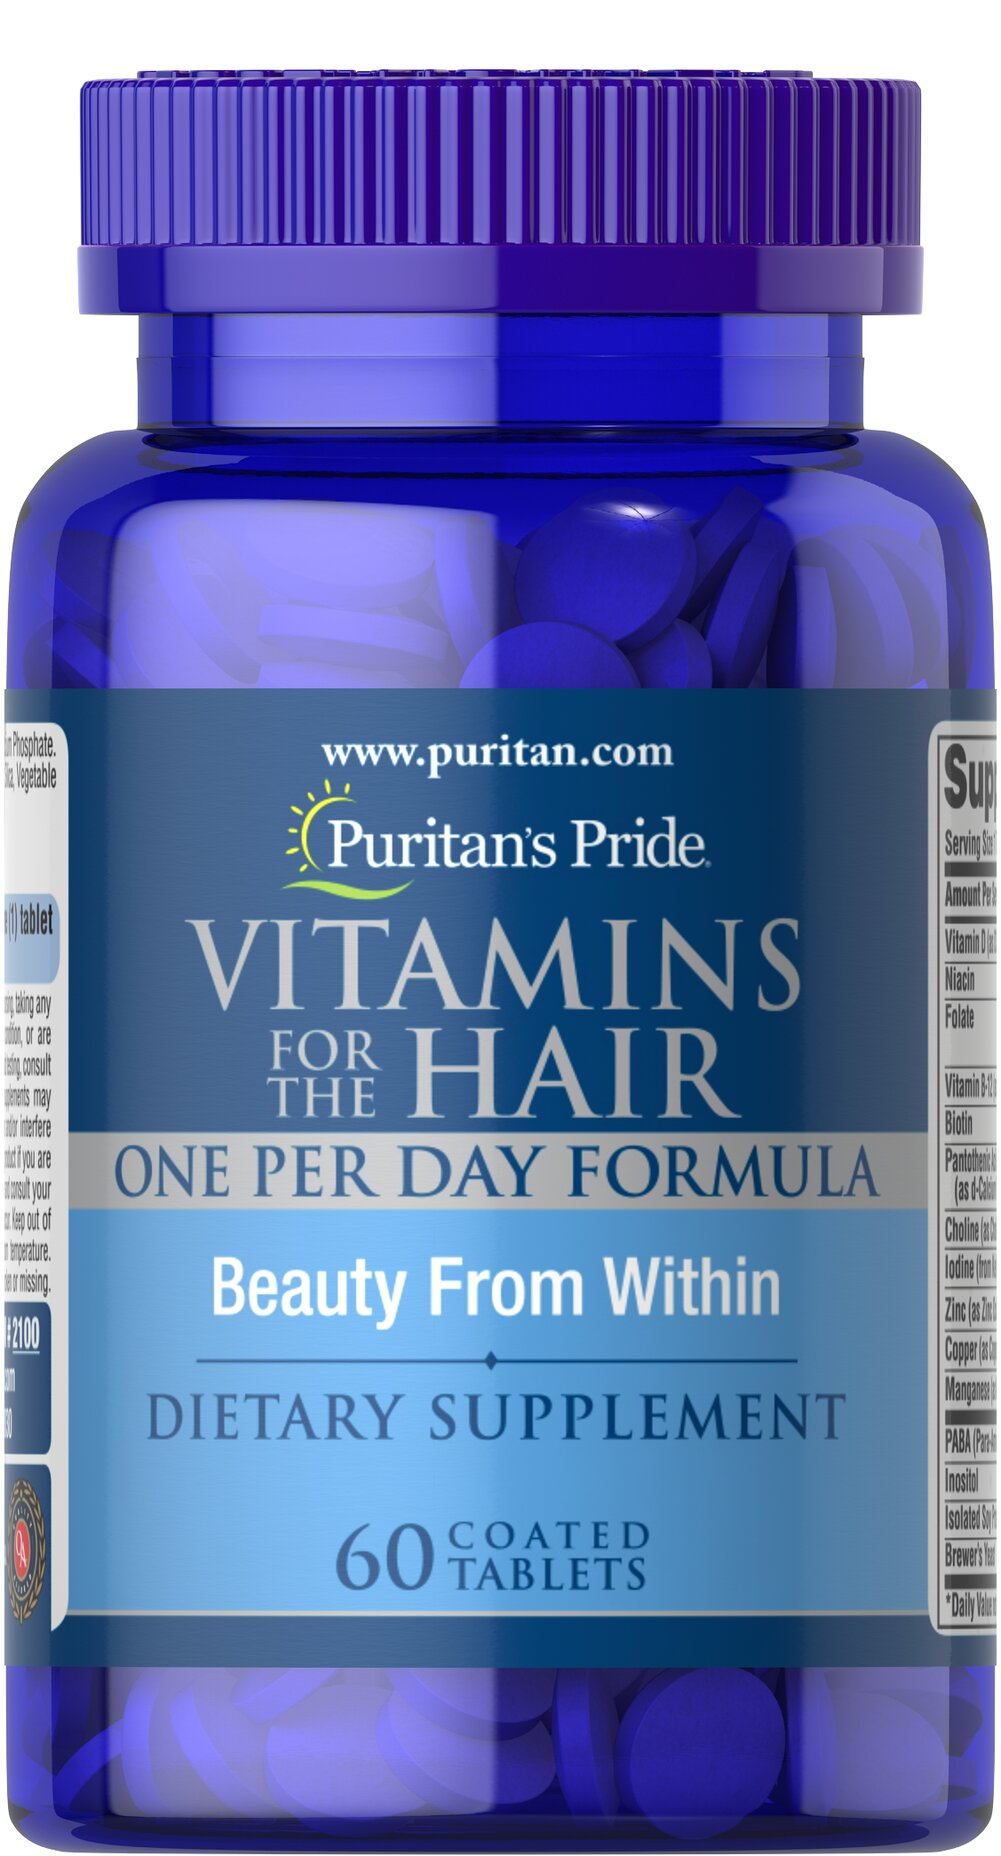 Vitamins for the Hair Thumbnail Alternate Bottle View